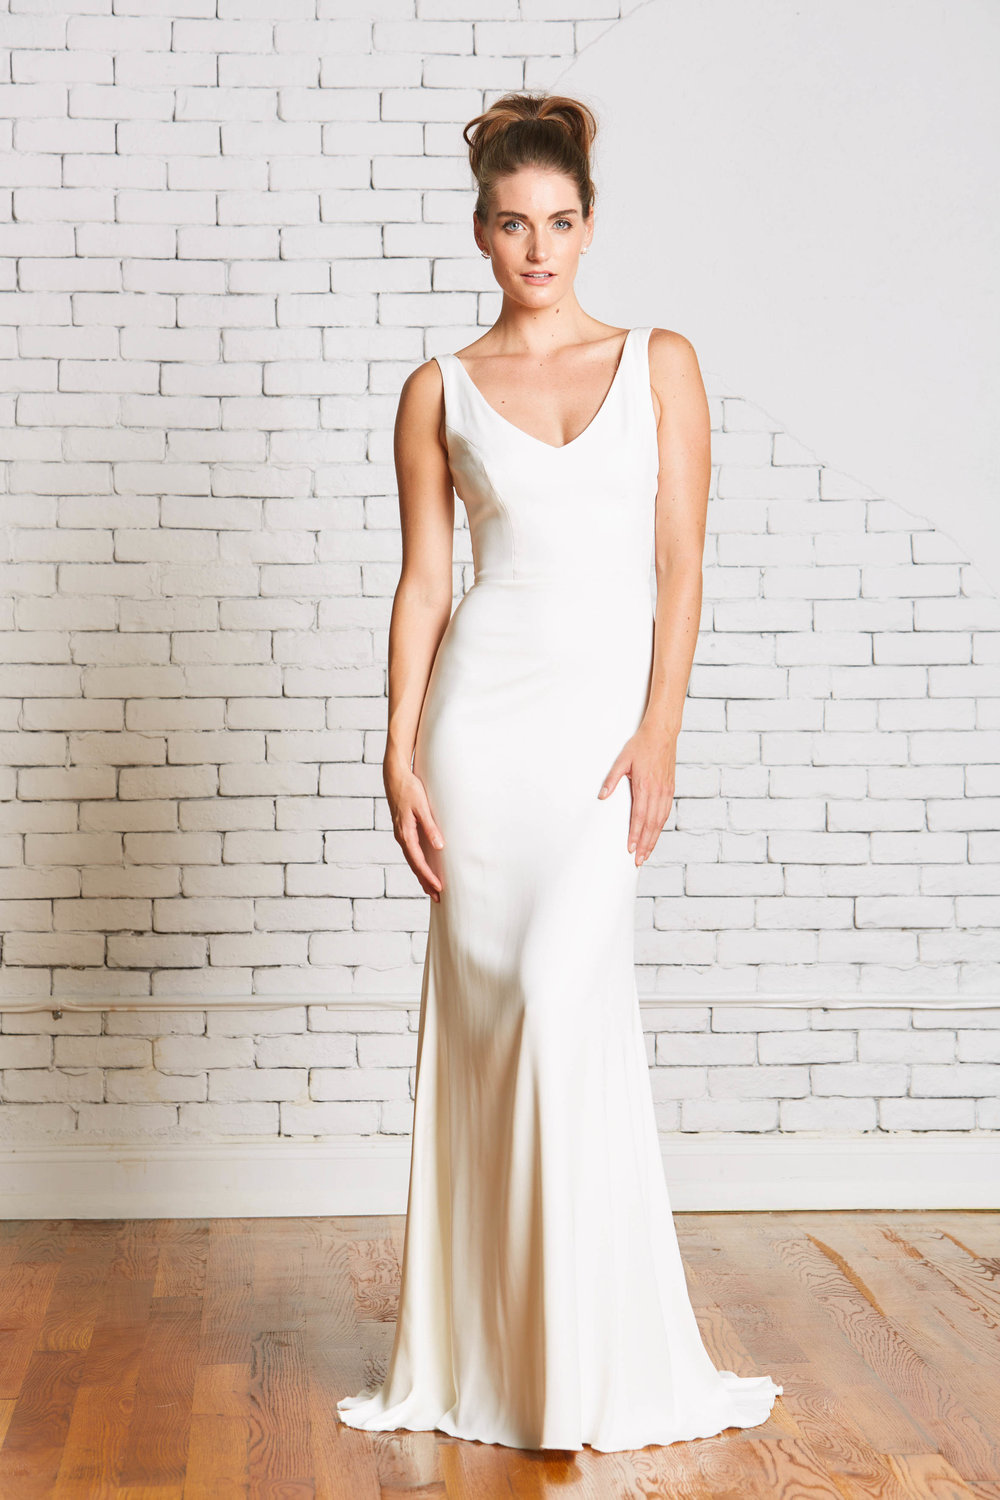 23.Rebecca_Schoneveld_Parker_Gown-47_sleek_simple_modern_v_neck_and_back_fitted_gown.jpg